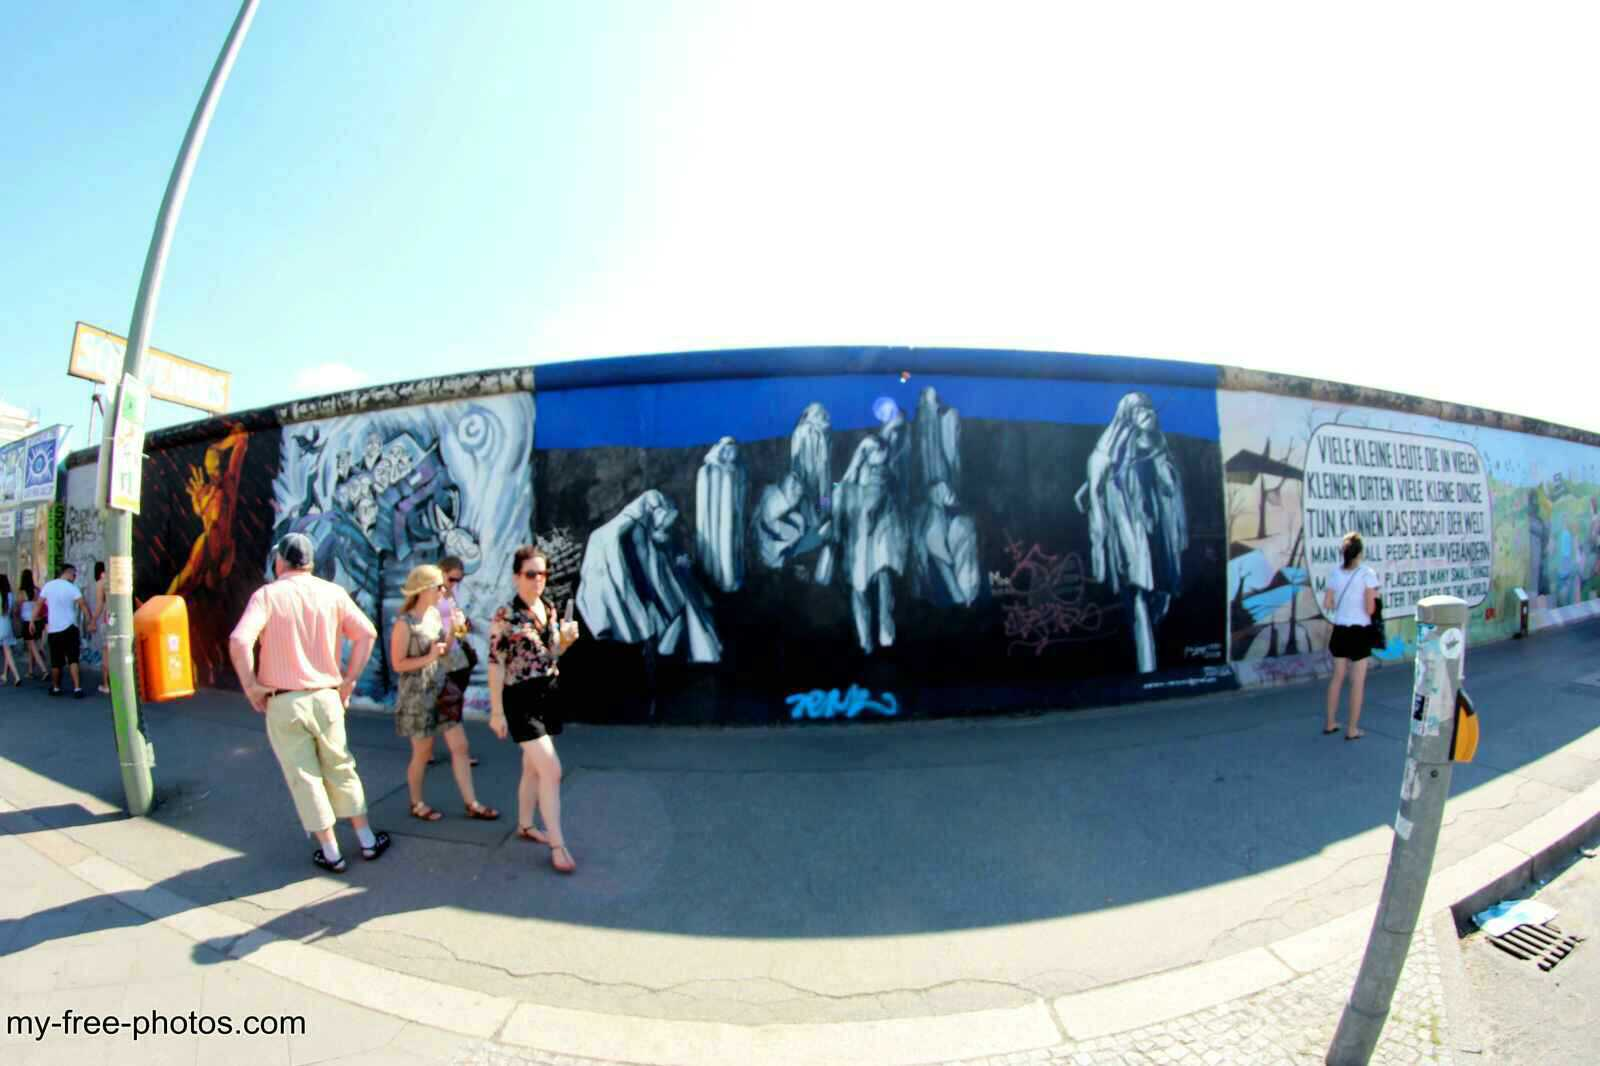 east side gallery8